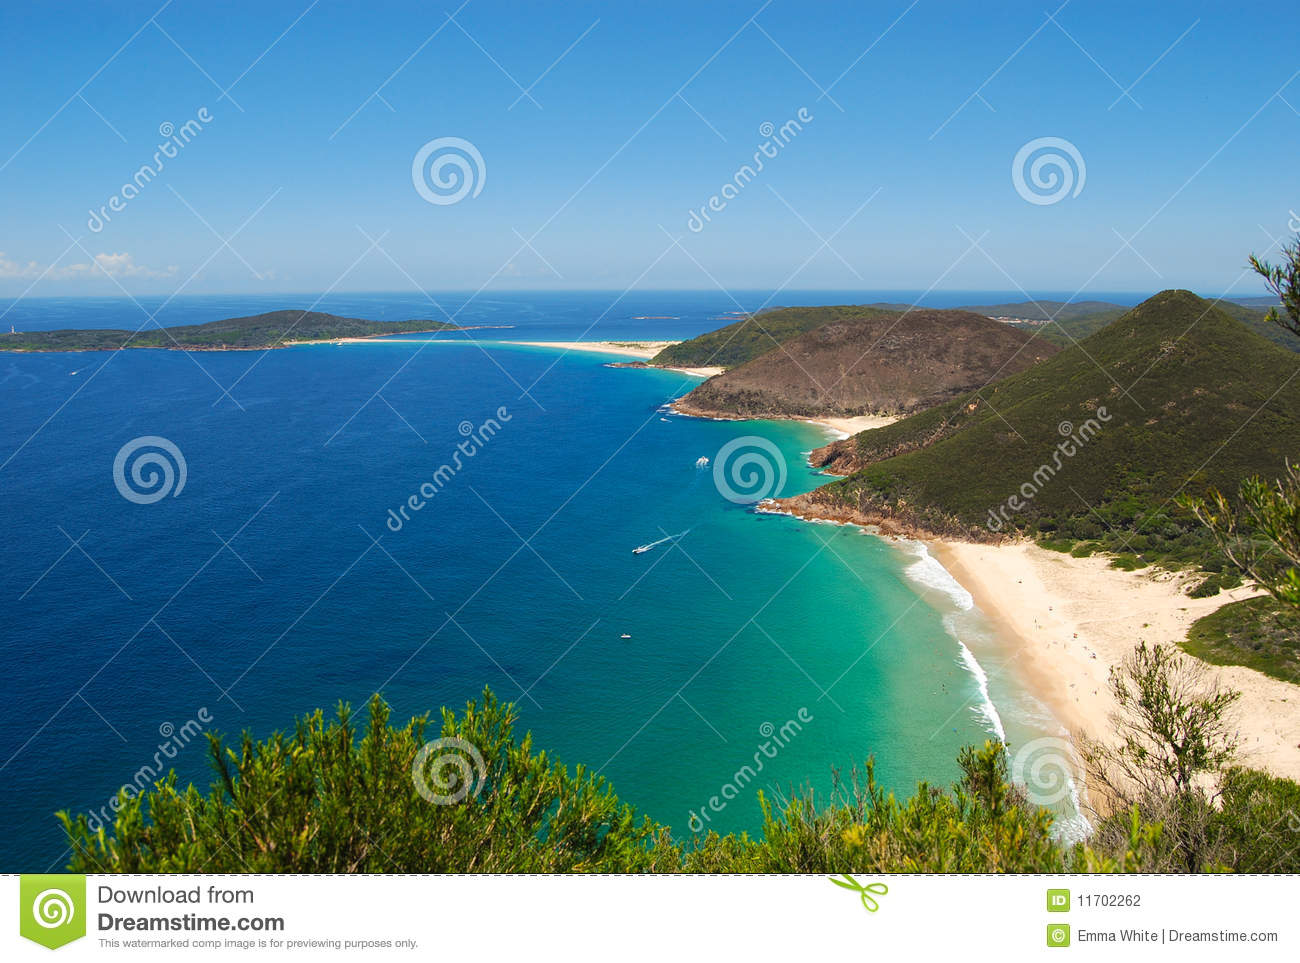 3 Beaches Stock Photography - Image: 11702262